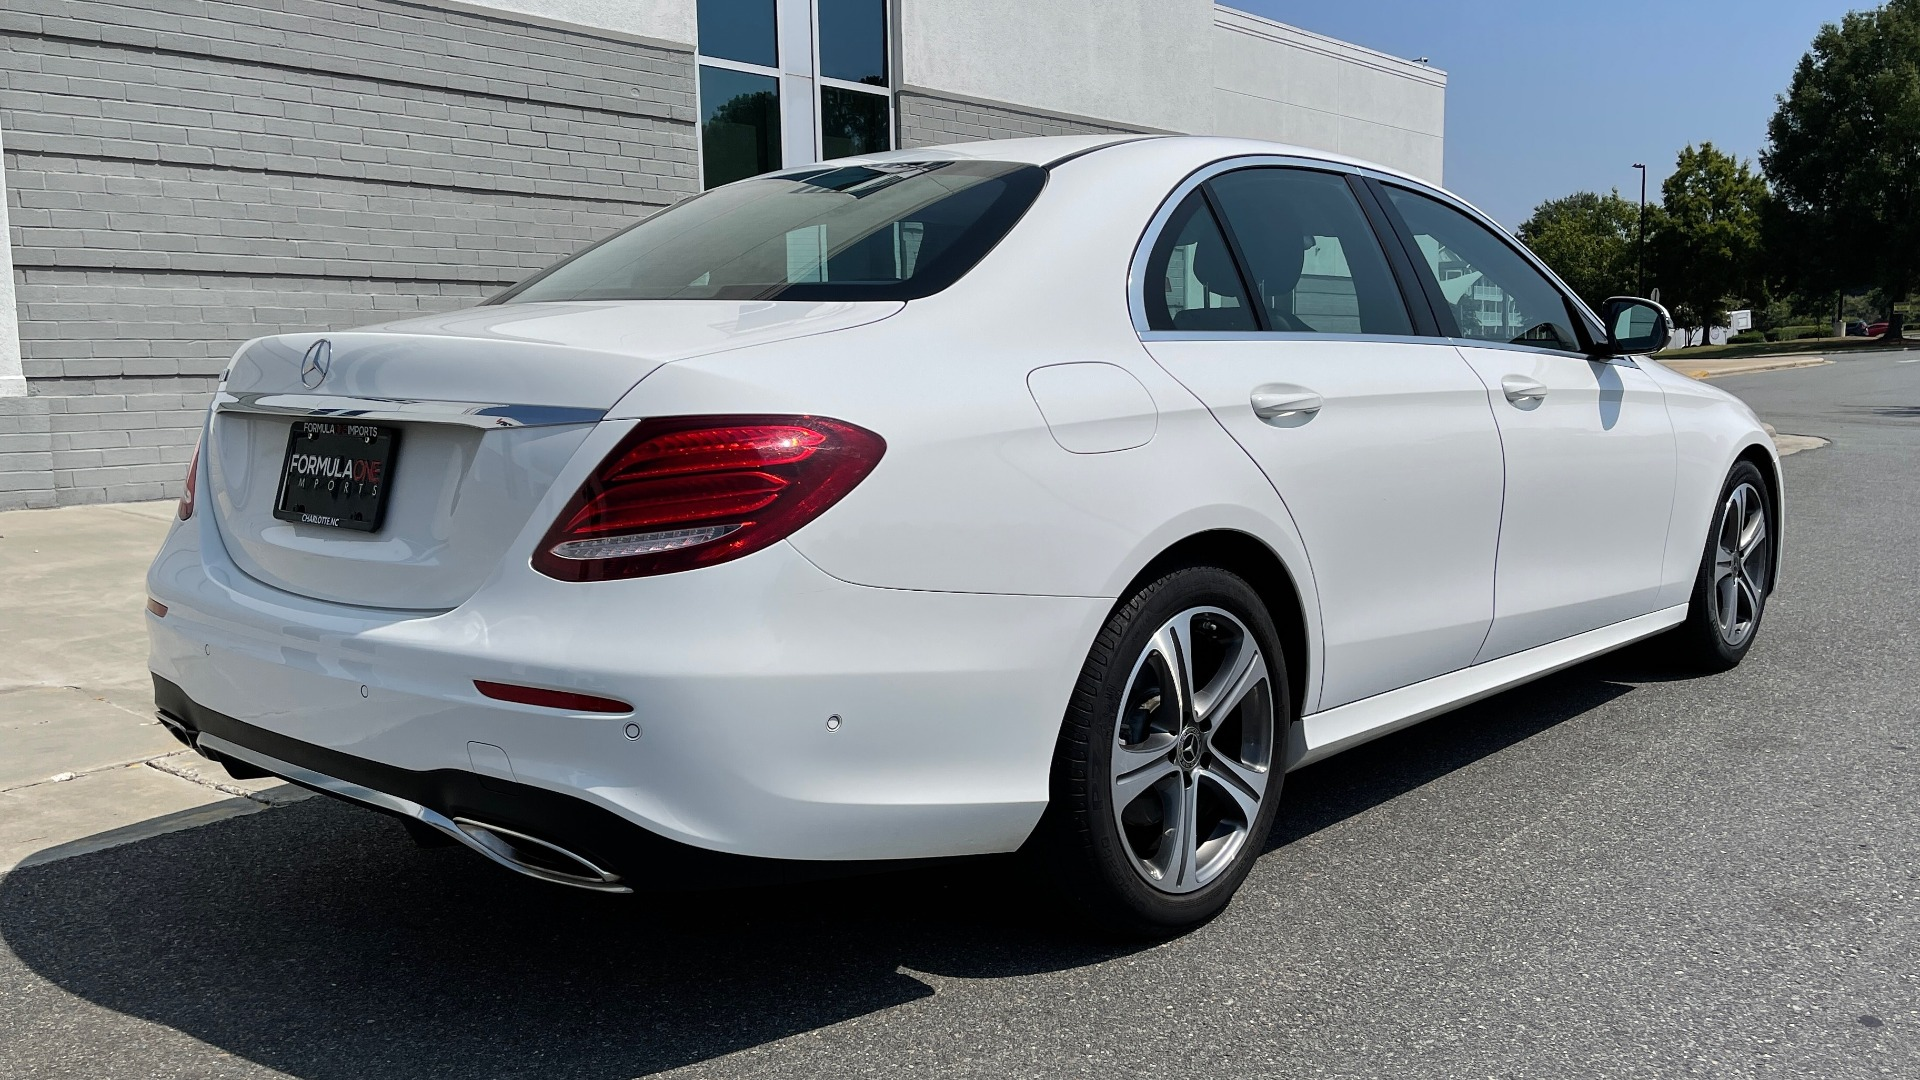 Used 2018 Mercedes-Benz E-CLASS E 300 / 2.0L I4 TURBO / NAV / BSA / SUNROOF / REARVIEW for sale Sold at Formula Imports in Charlotte NC 28227 2